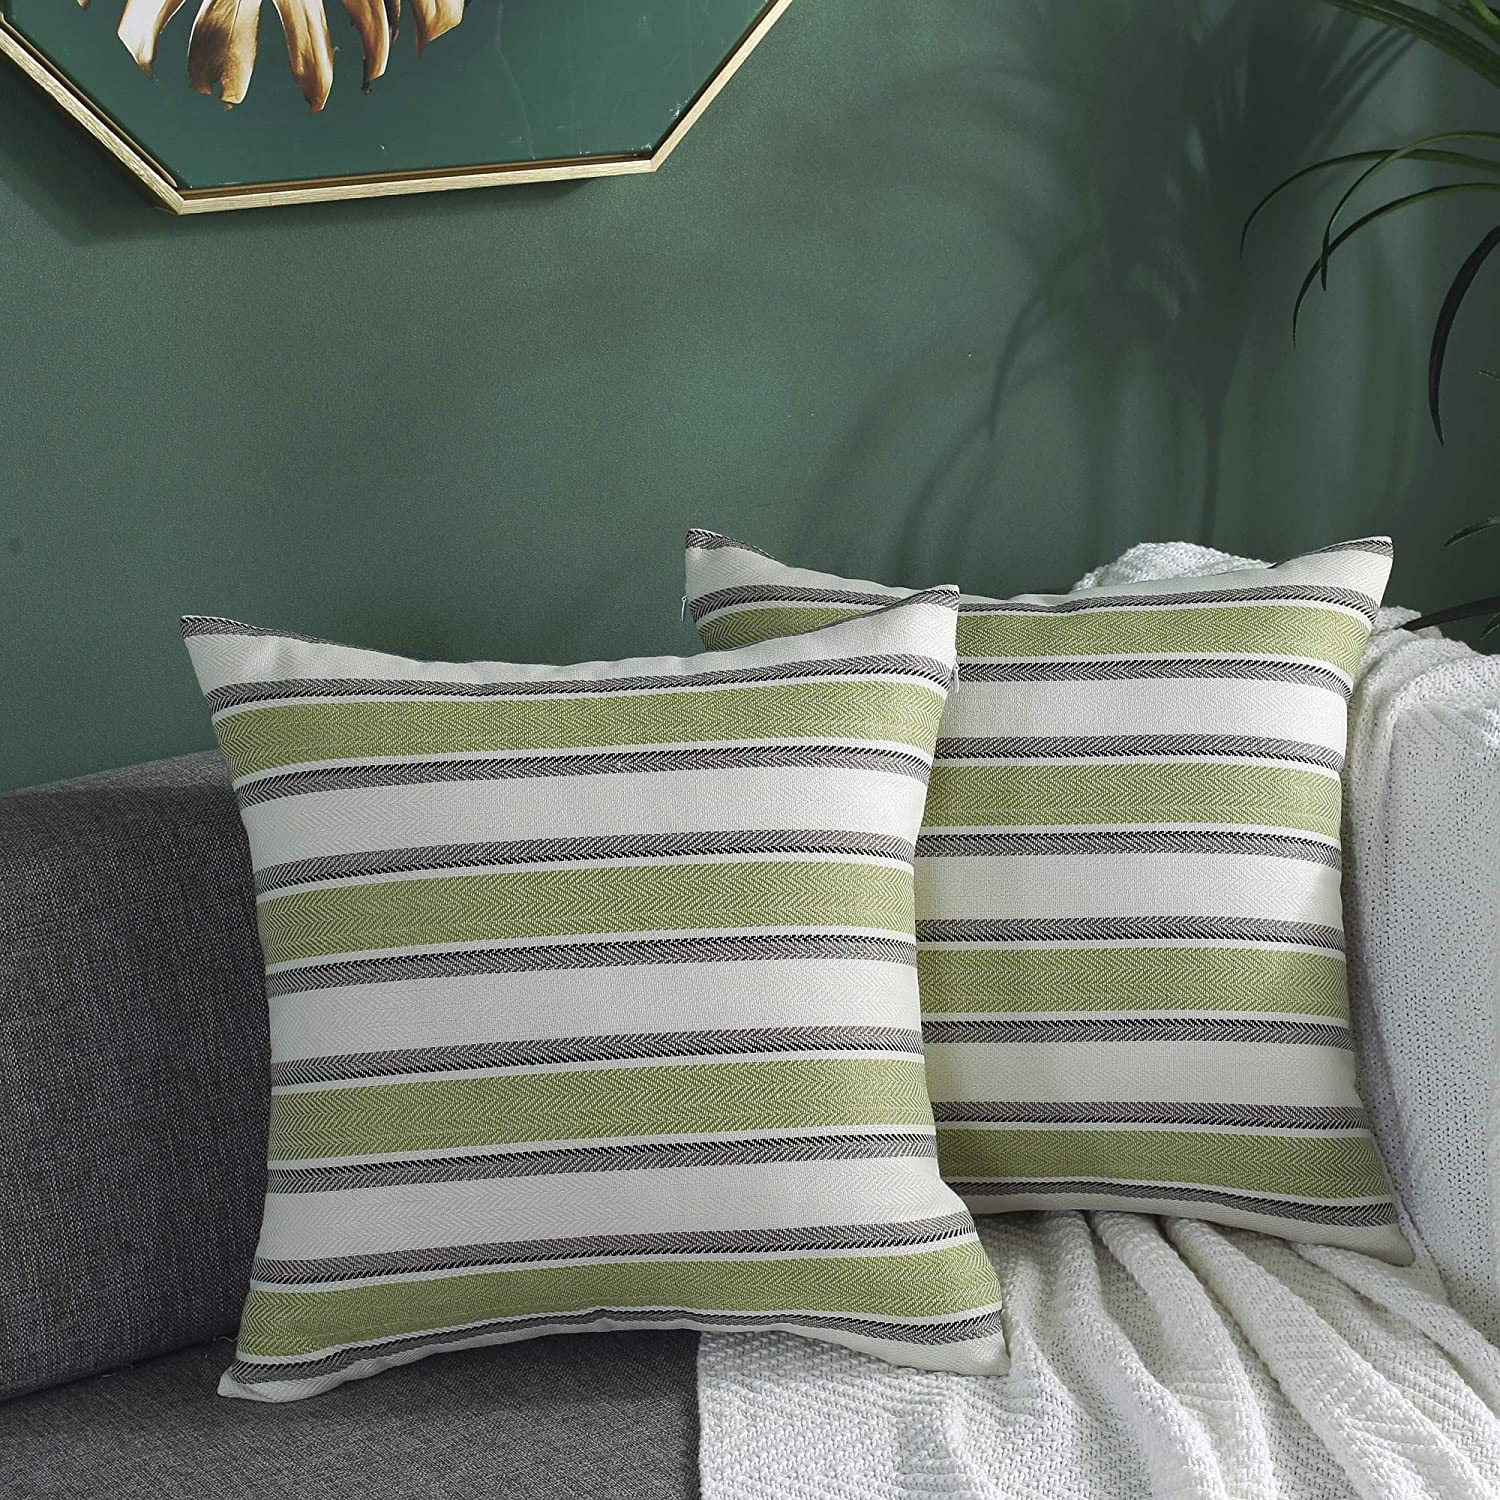 TAOSON Set of 2,Multi Color Stripe Lined Linen Burlap Square Home Decorative Throw Cushion Cover Pillow Cover Pillowcase with Hidden Zipper Closure Only Cover No Insert 16x16 Inch 40x40cm Green